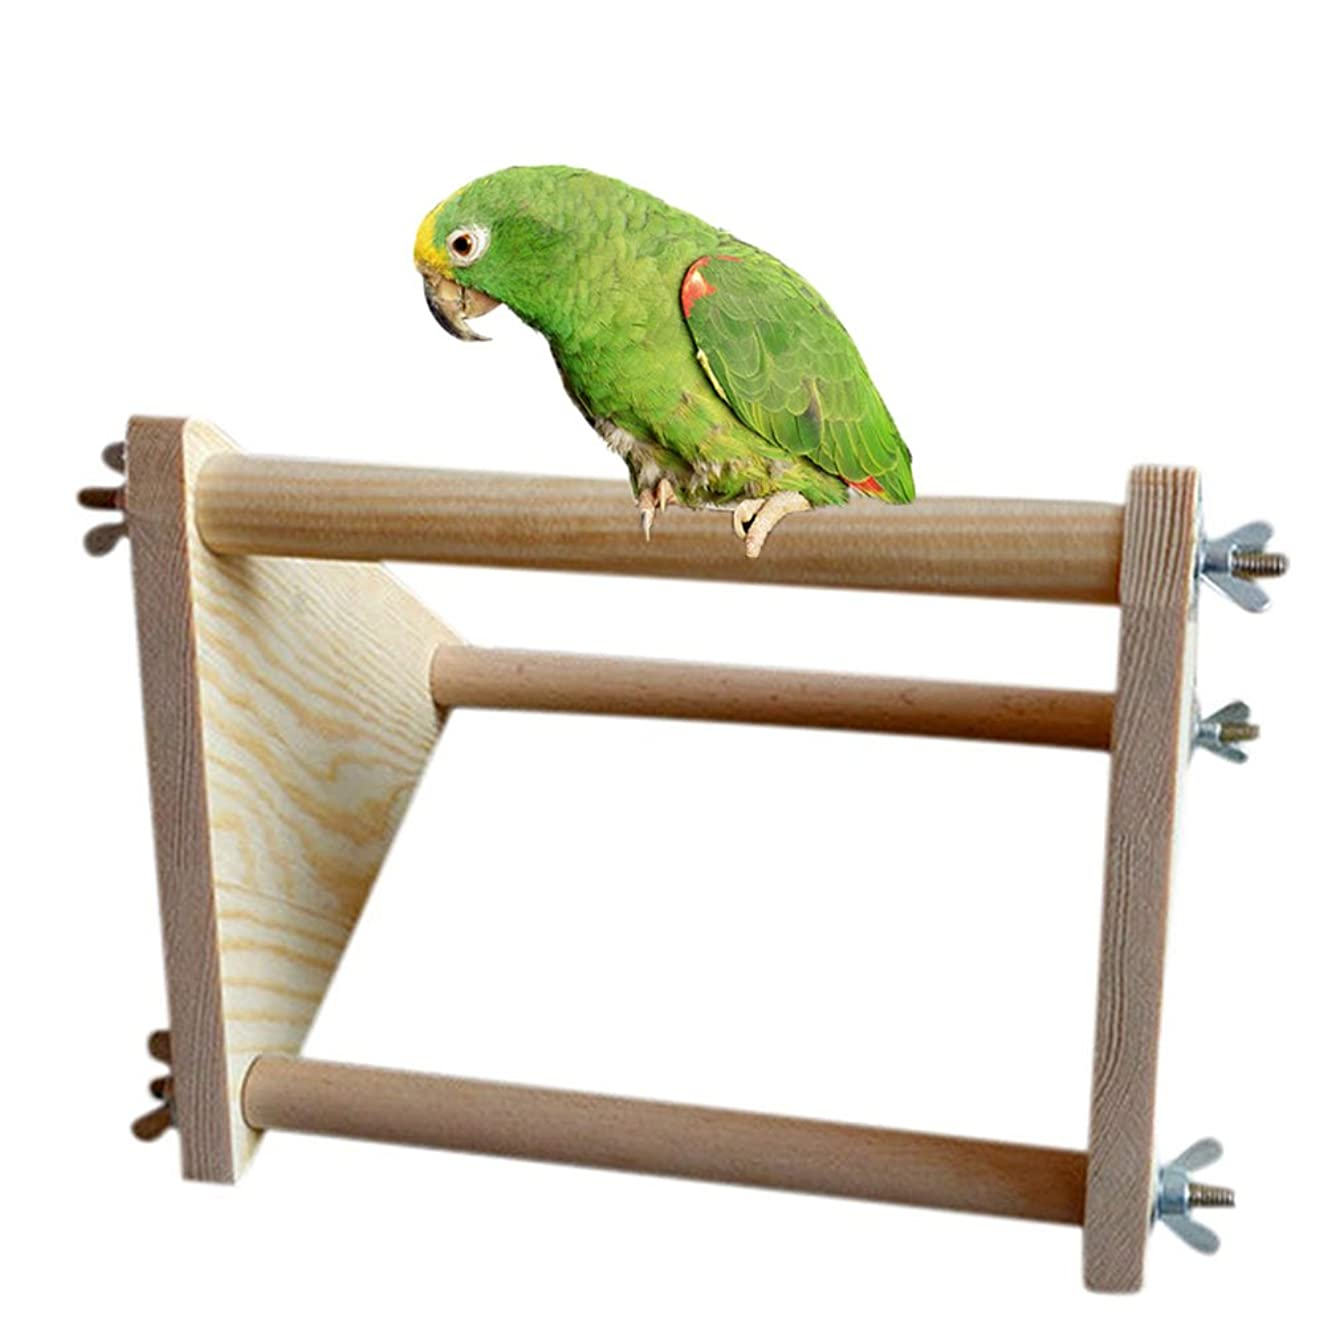 Wood Perch for Bird Parrot Macaw African Greys Budgies Parakeet Cockatiel Cockatoo Conure Lovebird Table Training Perch Stand Toy